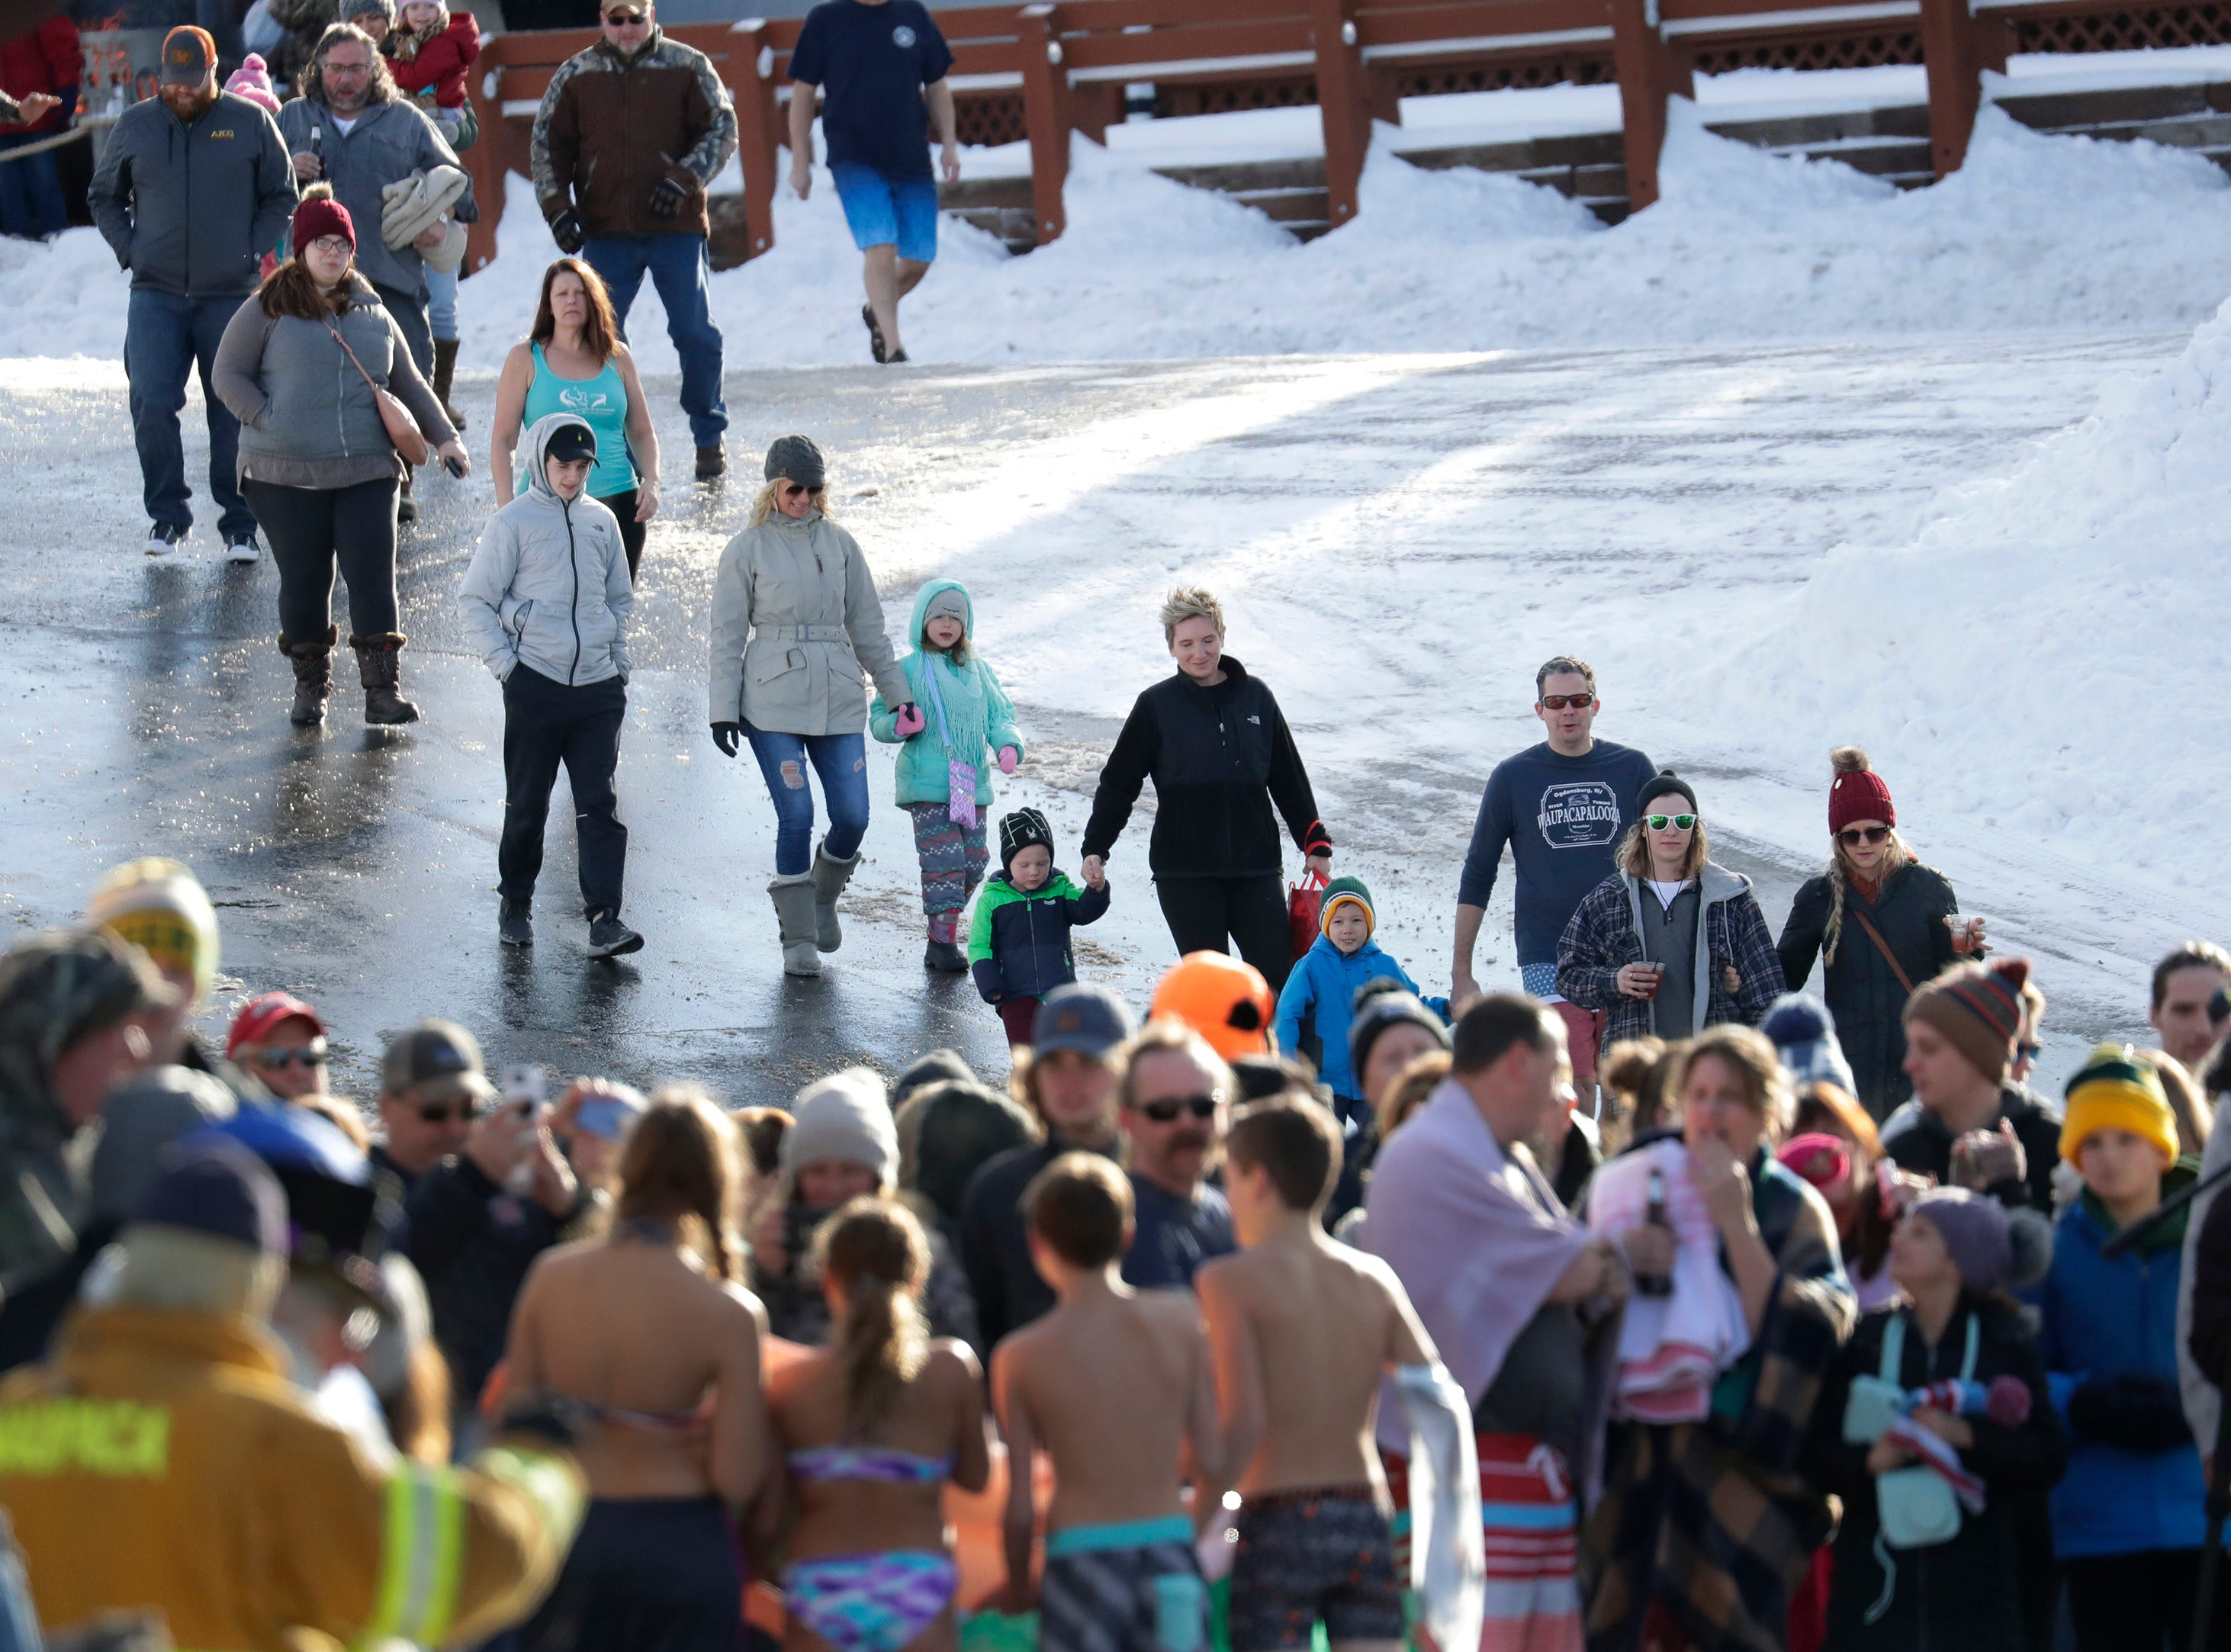 Hundreds of people arrive for the start of the Polar Bear Plunge Tuesday, January 1, 2019, at Becker Marine on Lime Kiln Lake in Waupaca, Wis. Dan Powers/USA TODAY NETWORK-Wisconsin